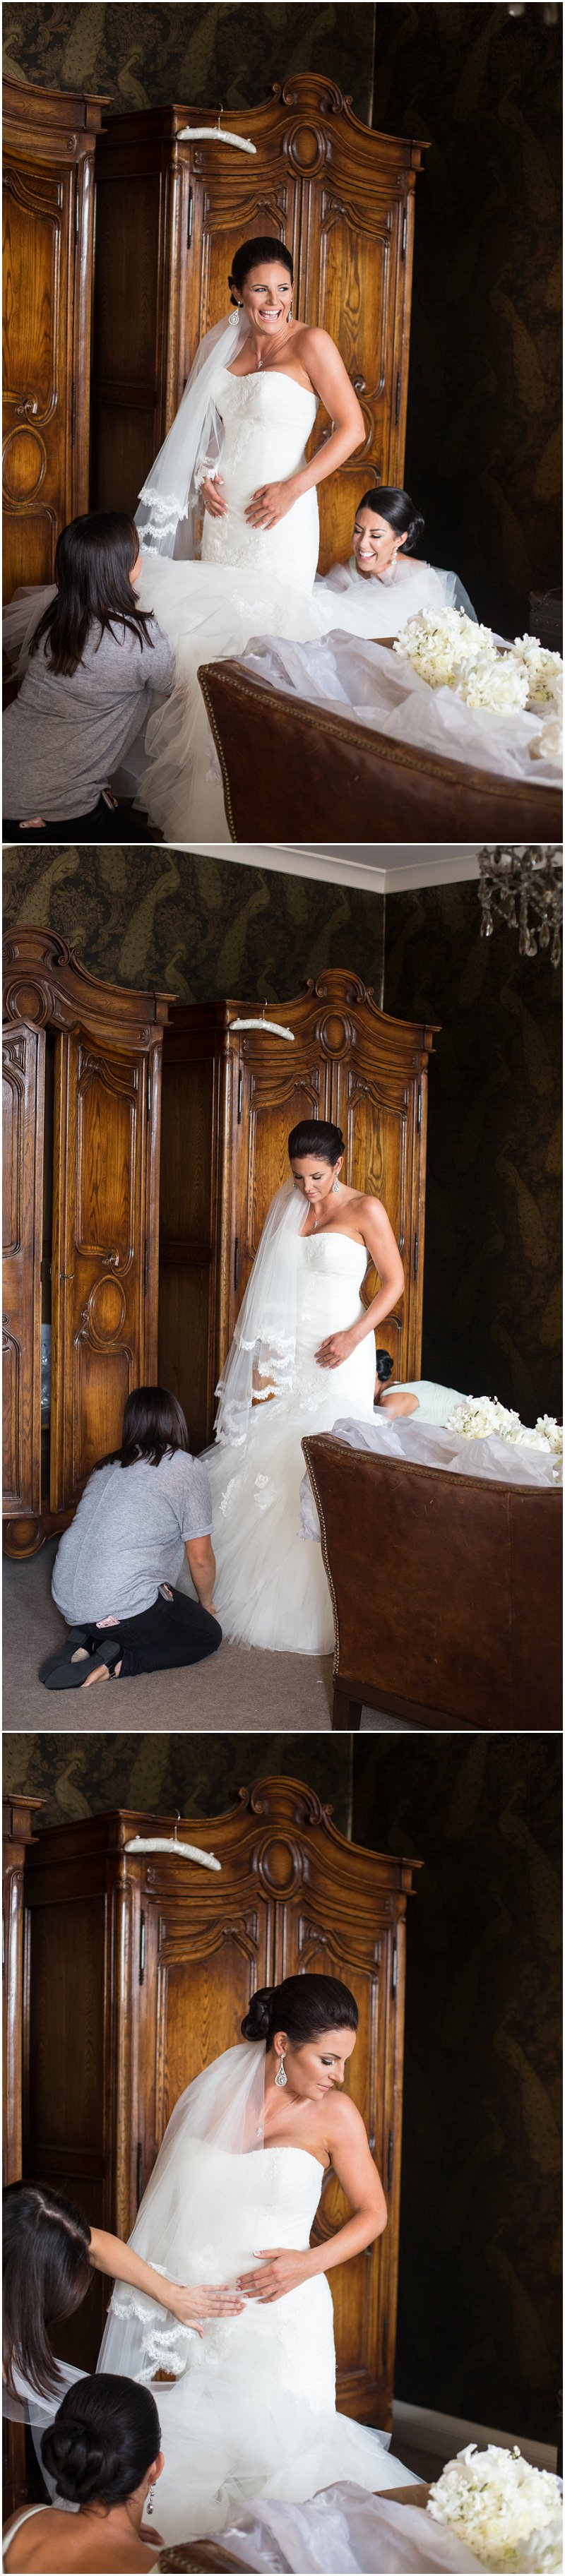 Bride getting into dress at Eaves Hall, Lancashire